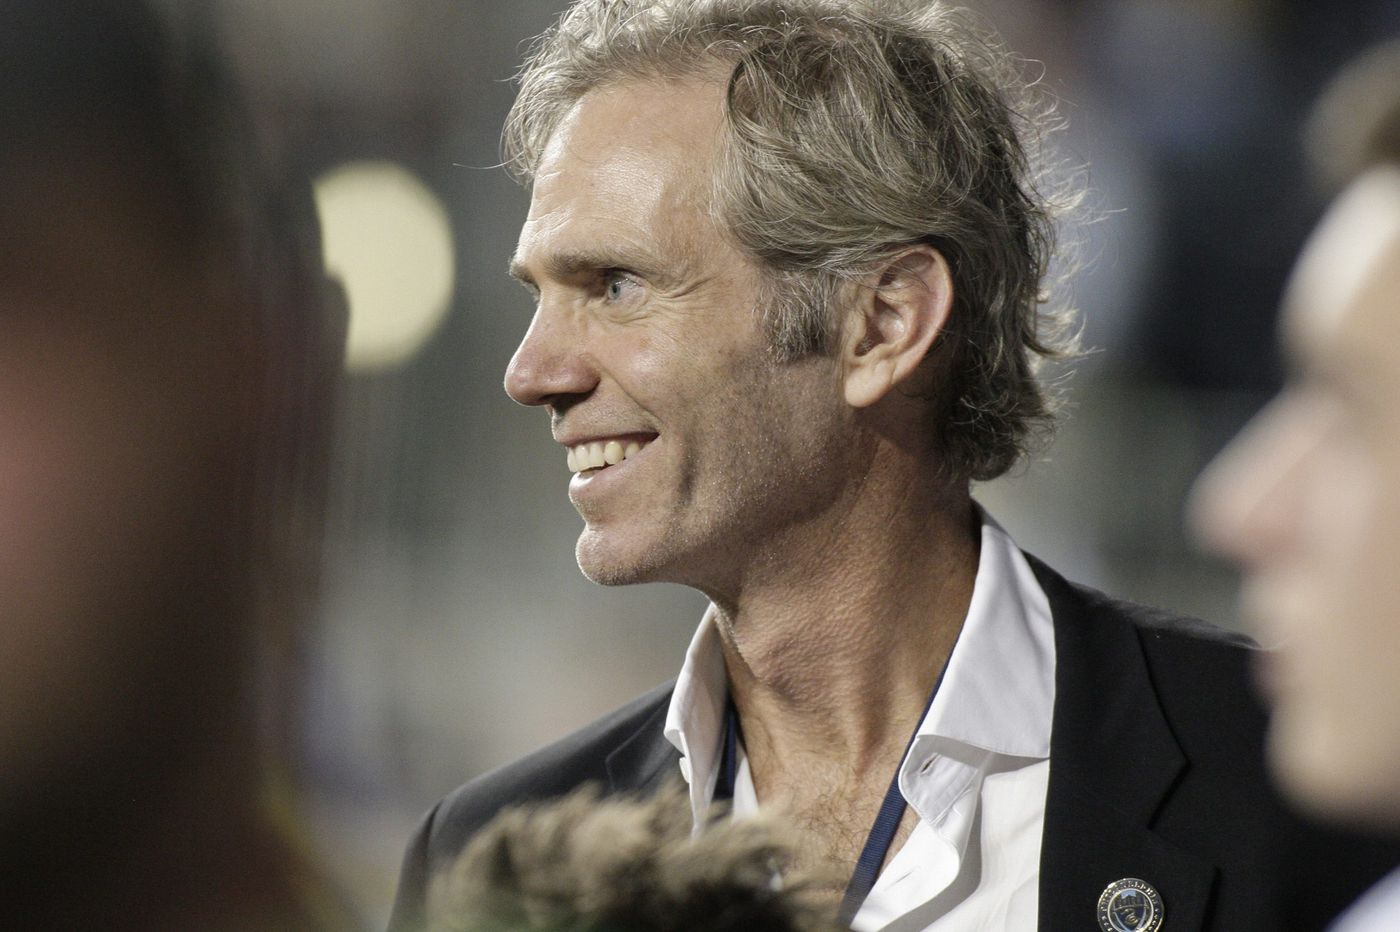 Jay Sugarman: Next Union sporting director hire is 'my decision,' with input from across team